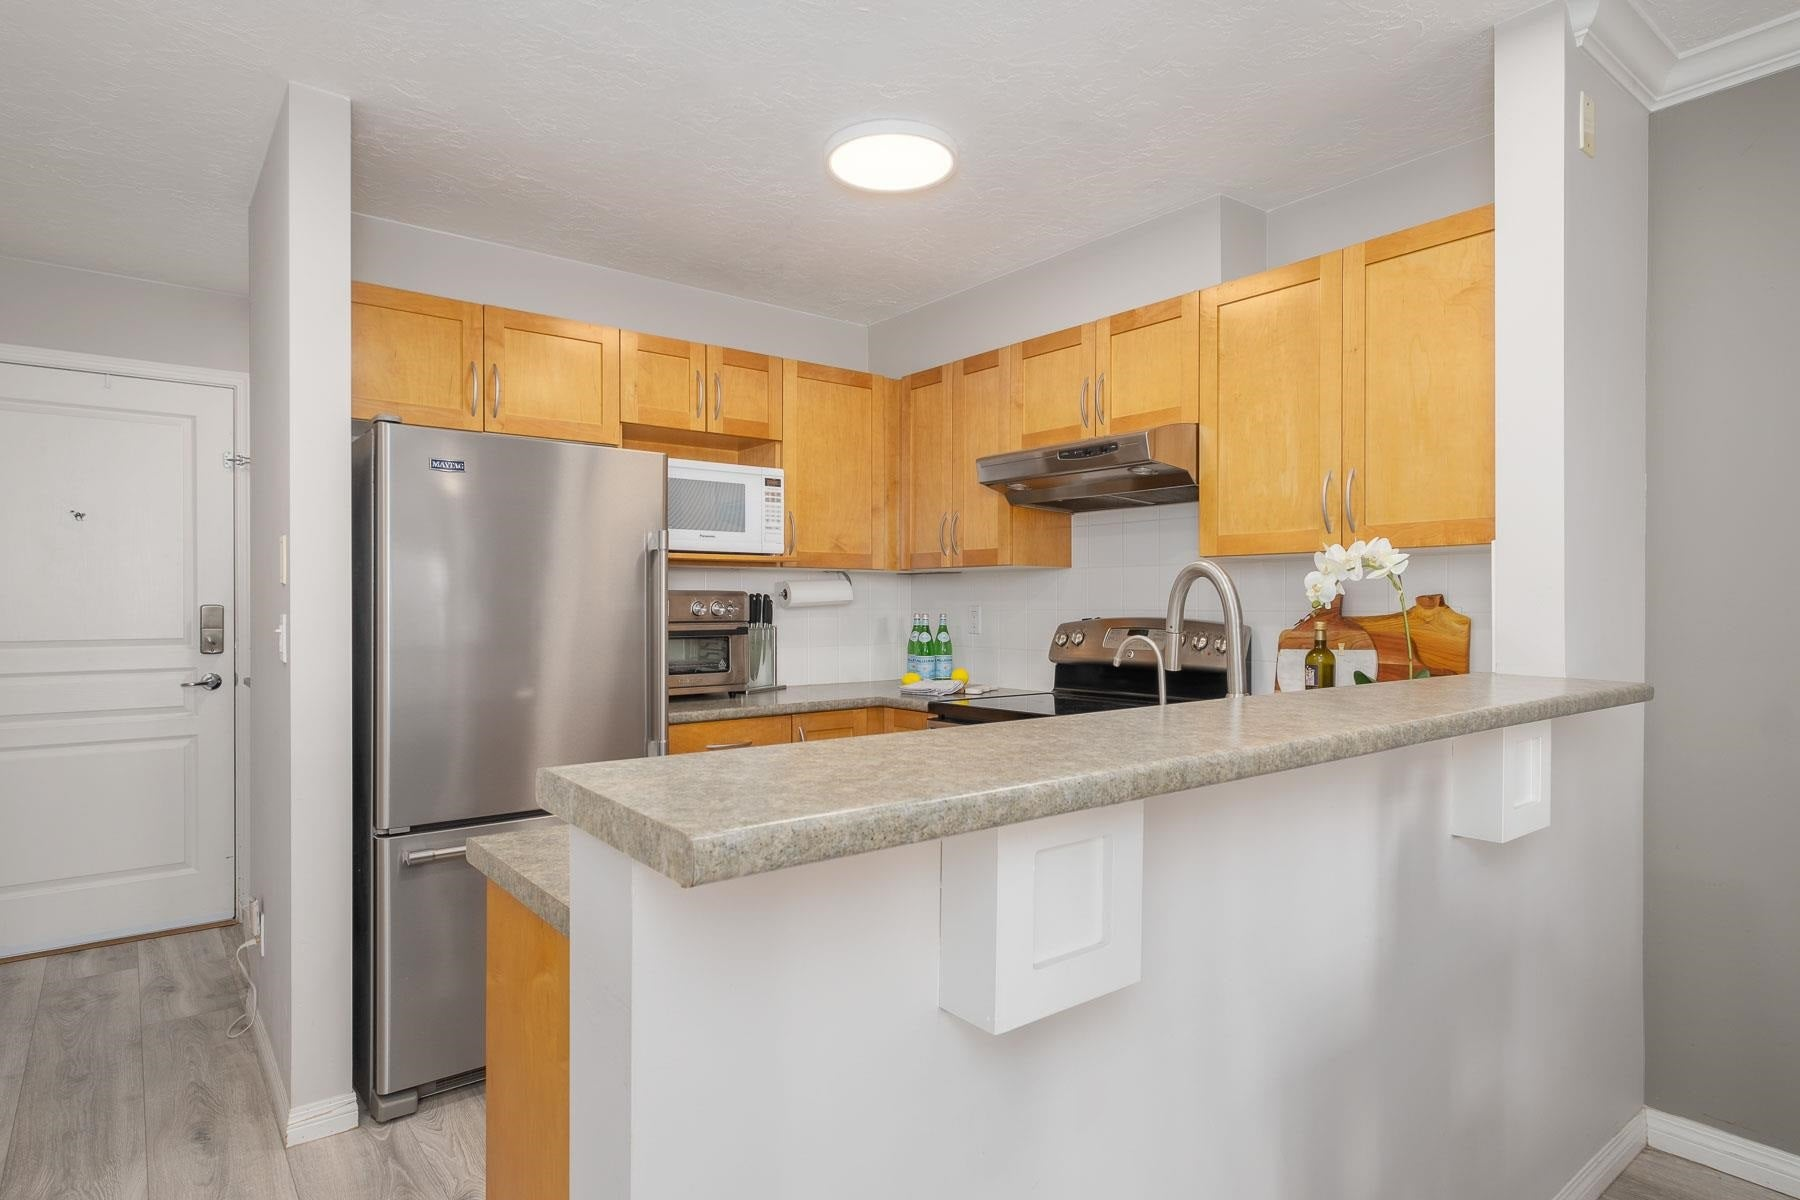 205 333 E 1ST STREET - Lower Lonsdale Apartment/Condo for sale, 1 Bedroom (R2618010) - #16